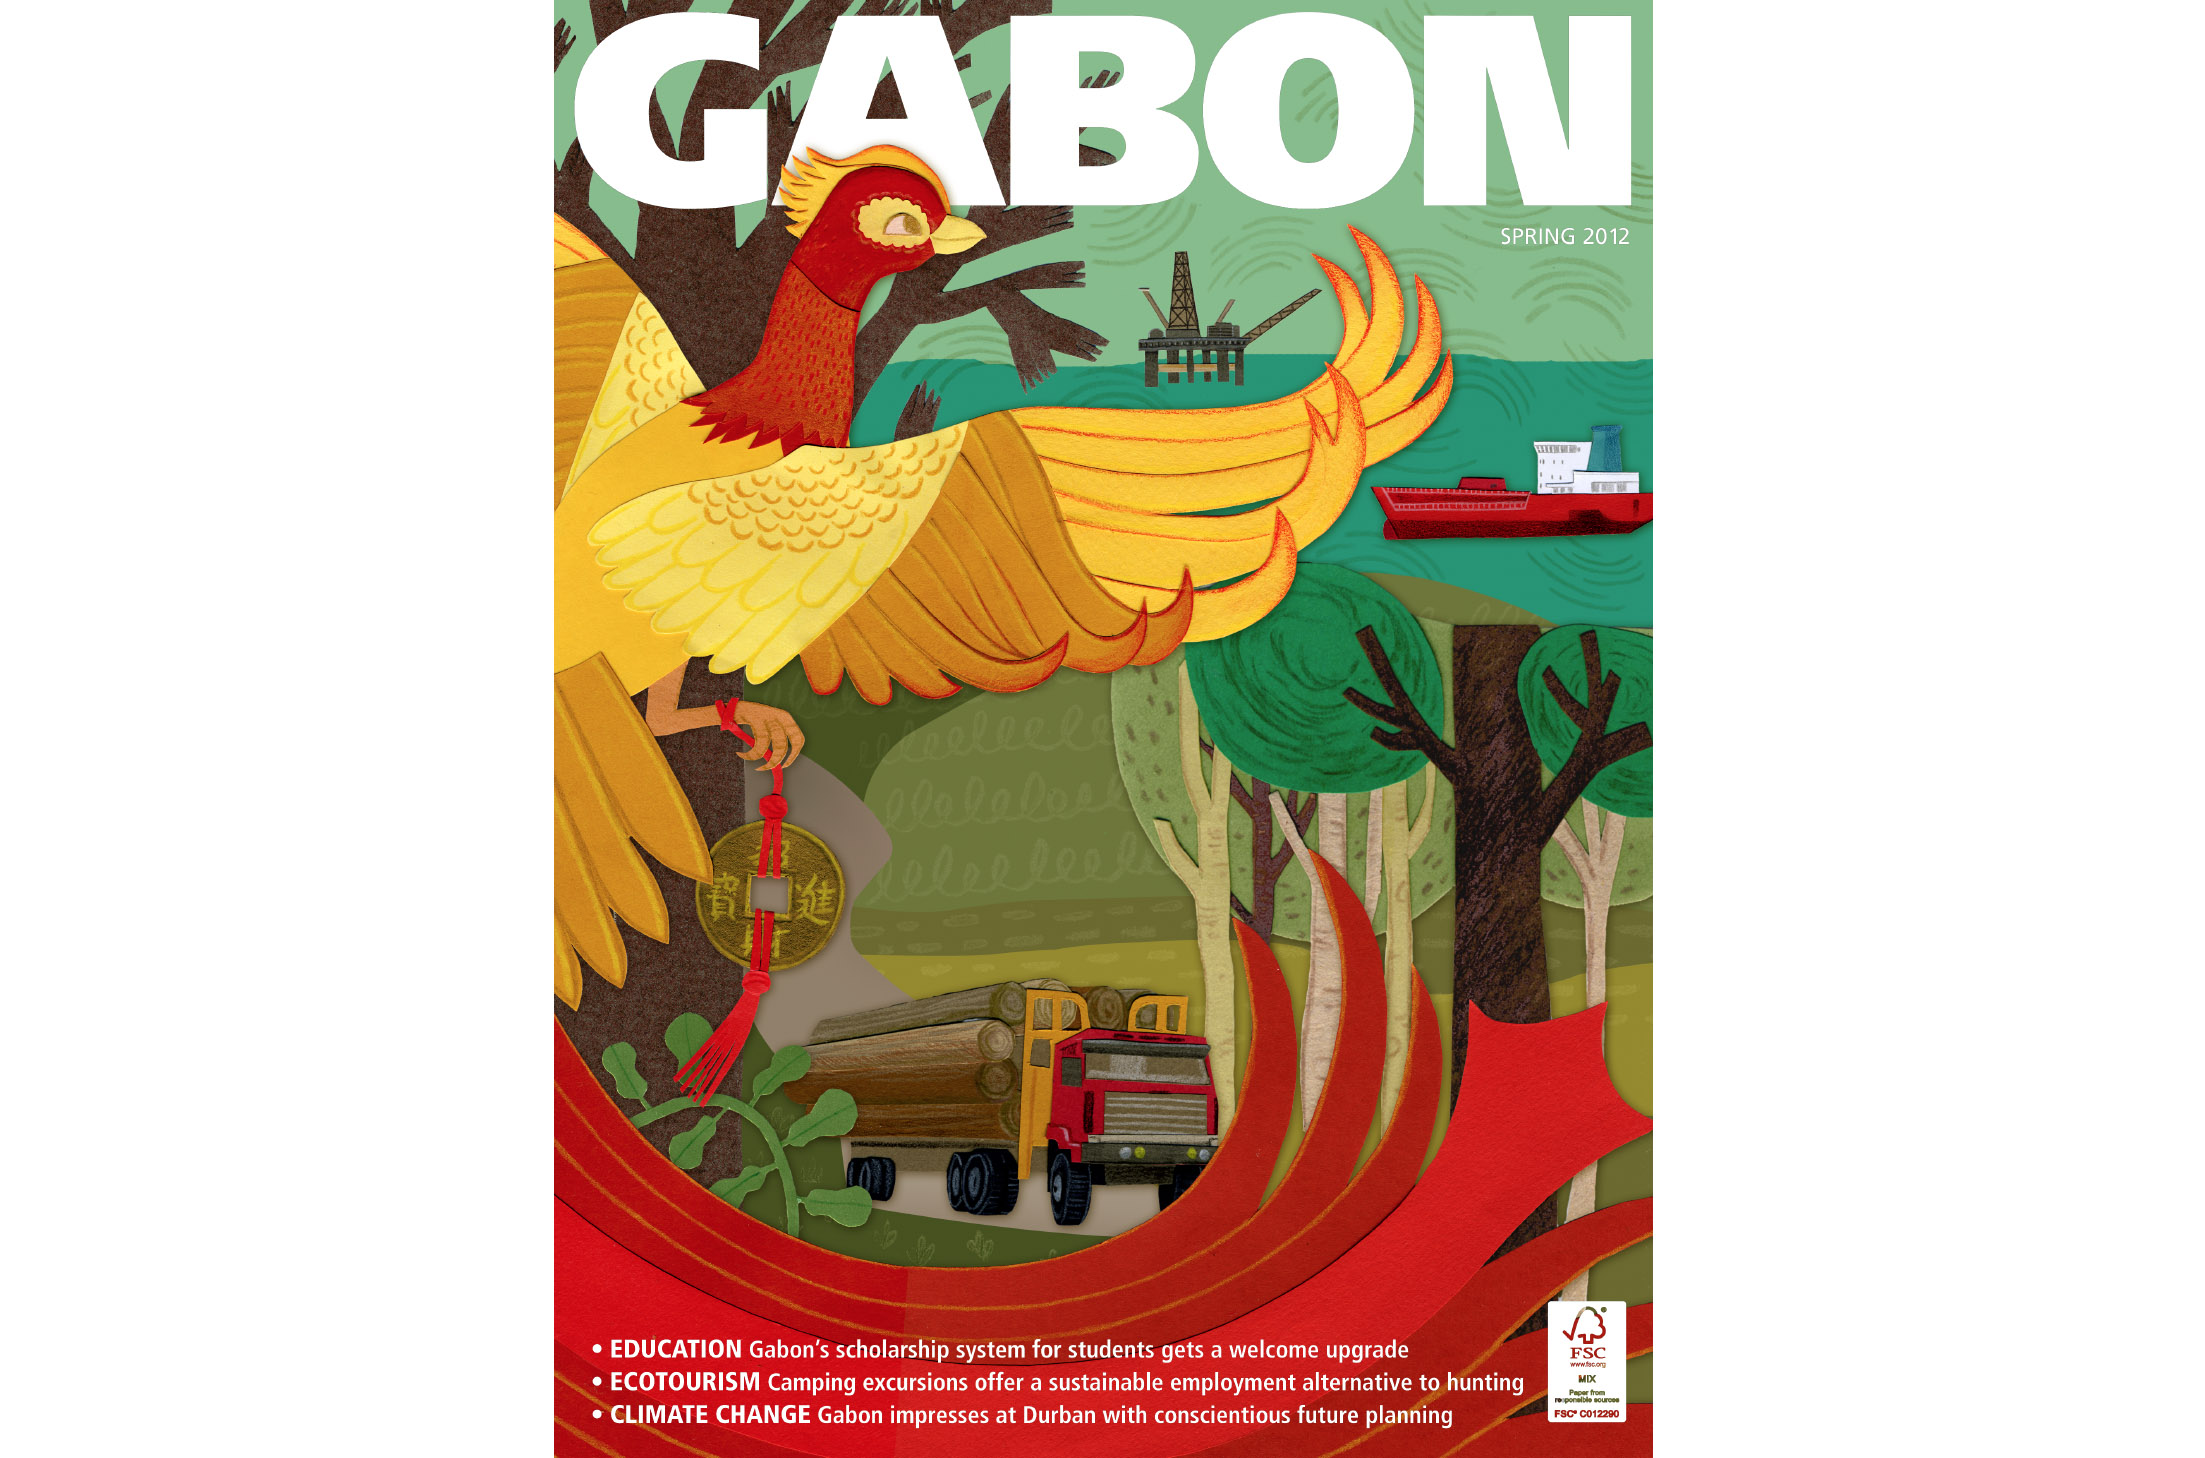 gabon_china_magazine_cover_illustration_pheonix.jpg